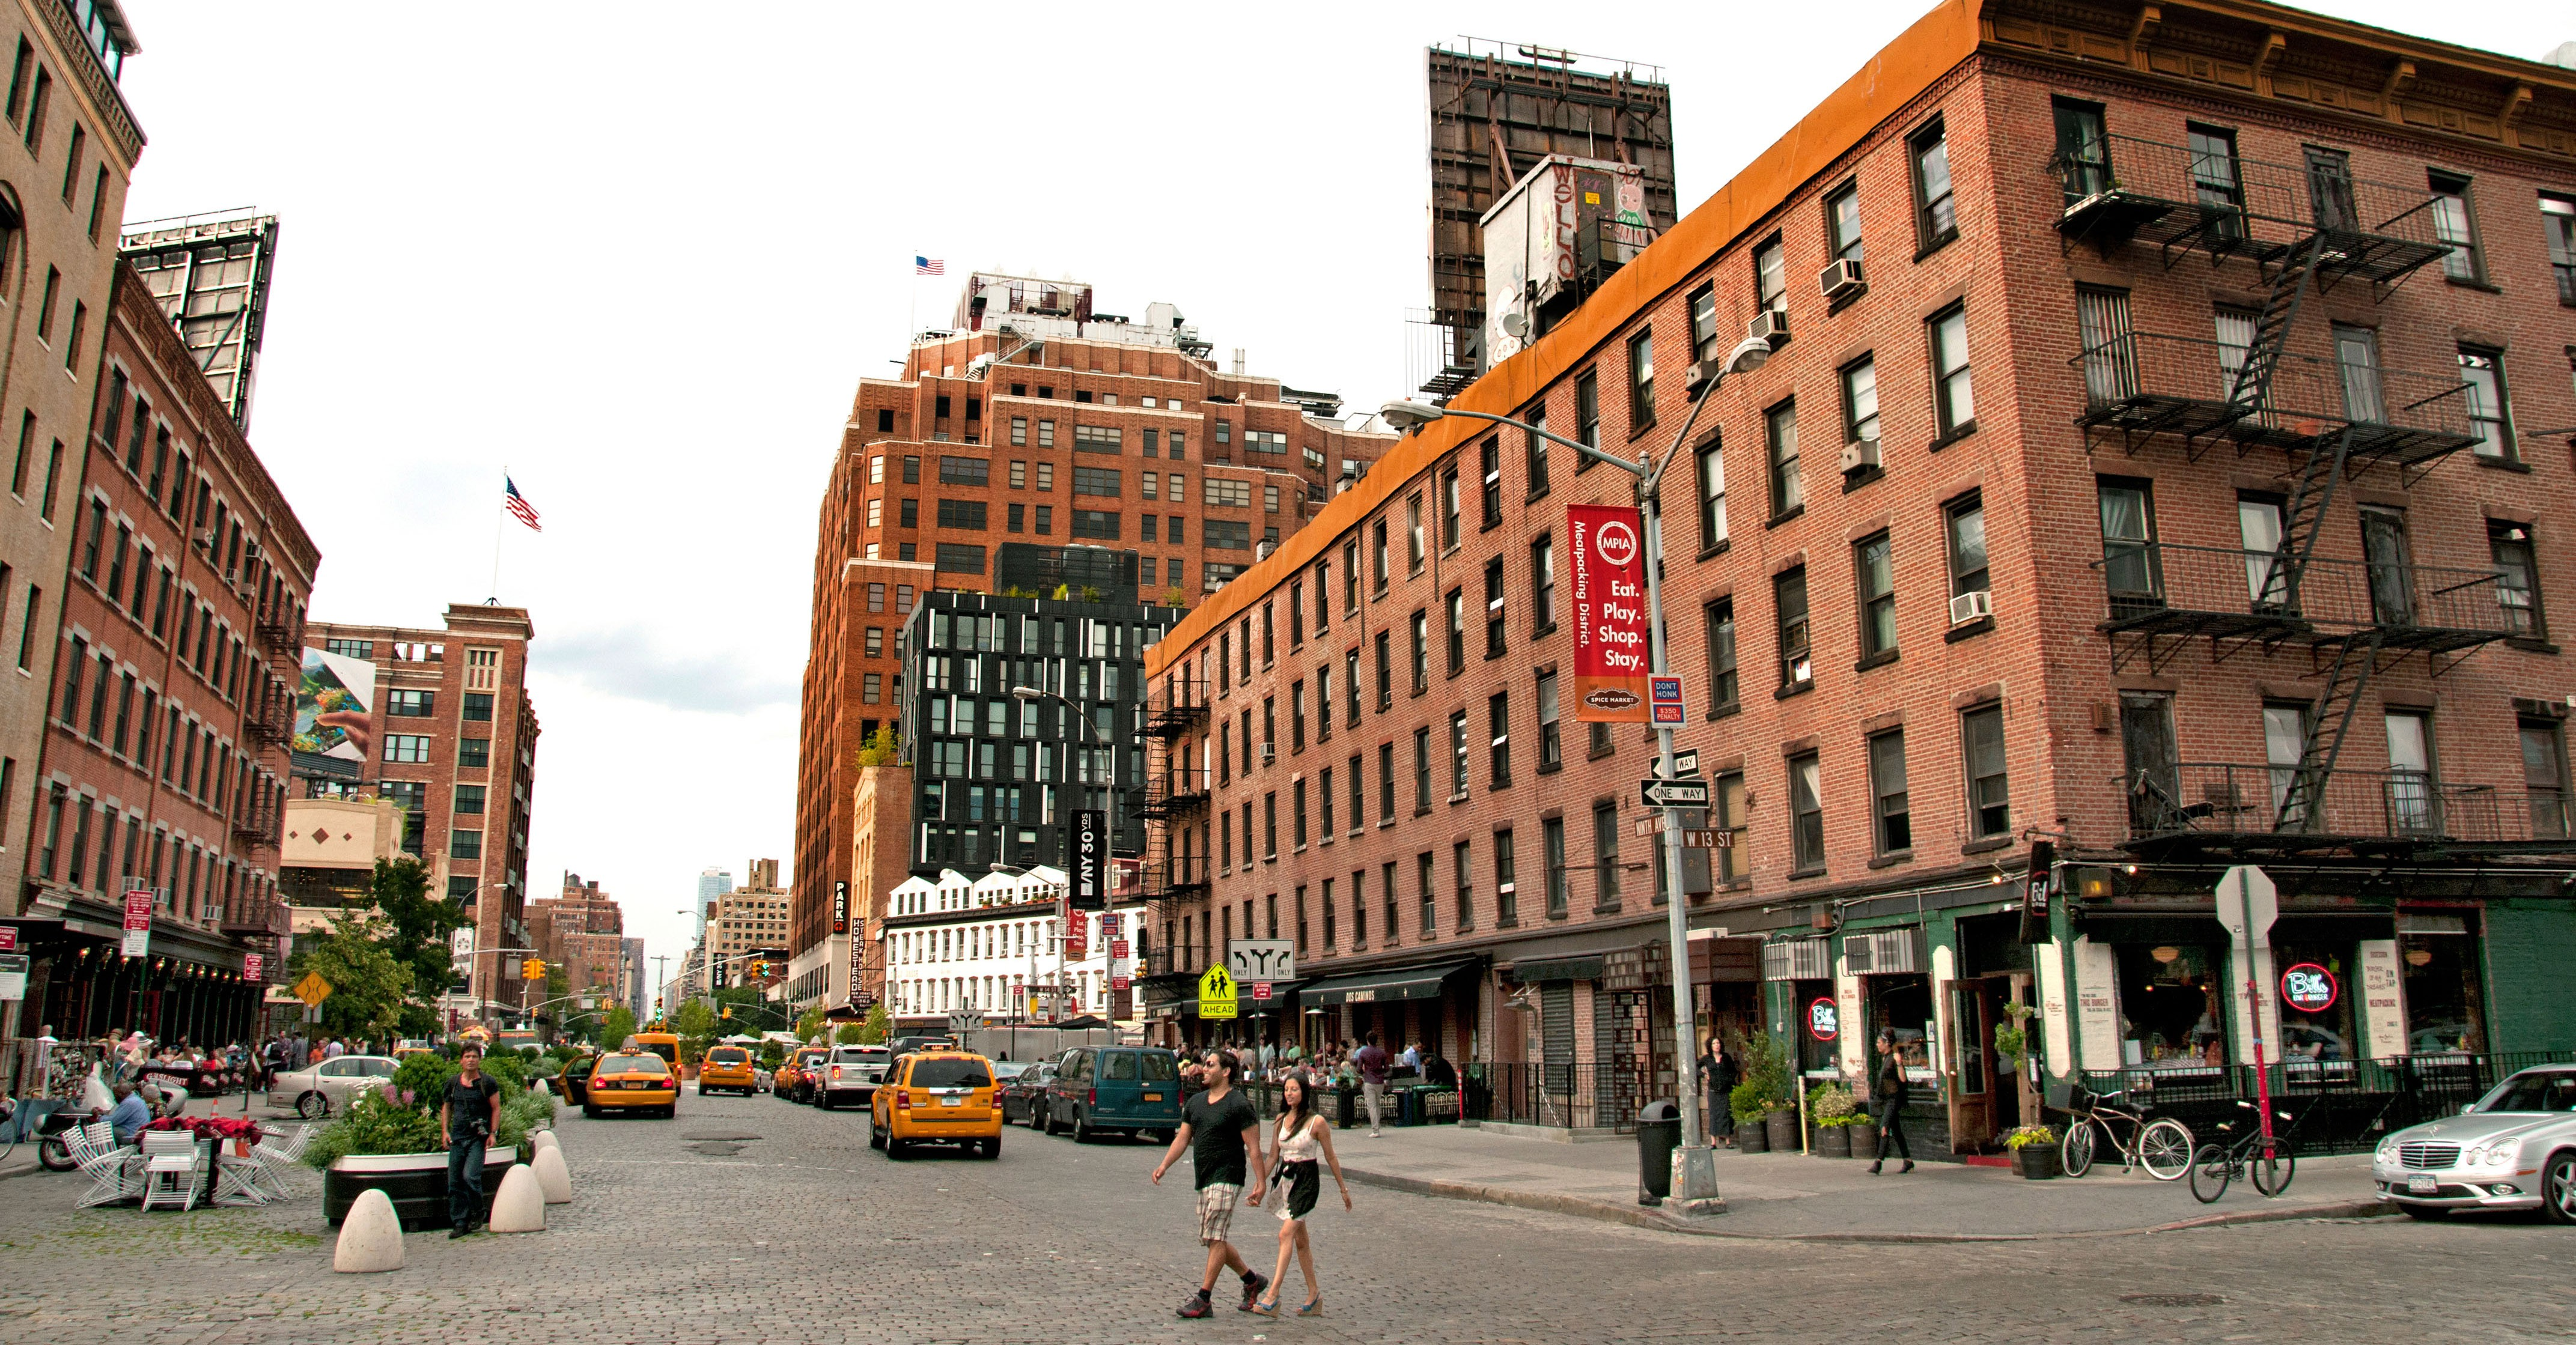 While the Meatpacking District is small, it's not short on attractions